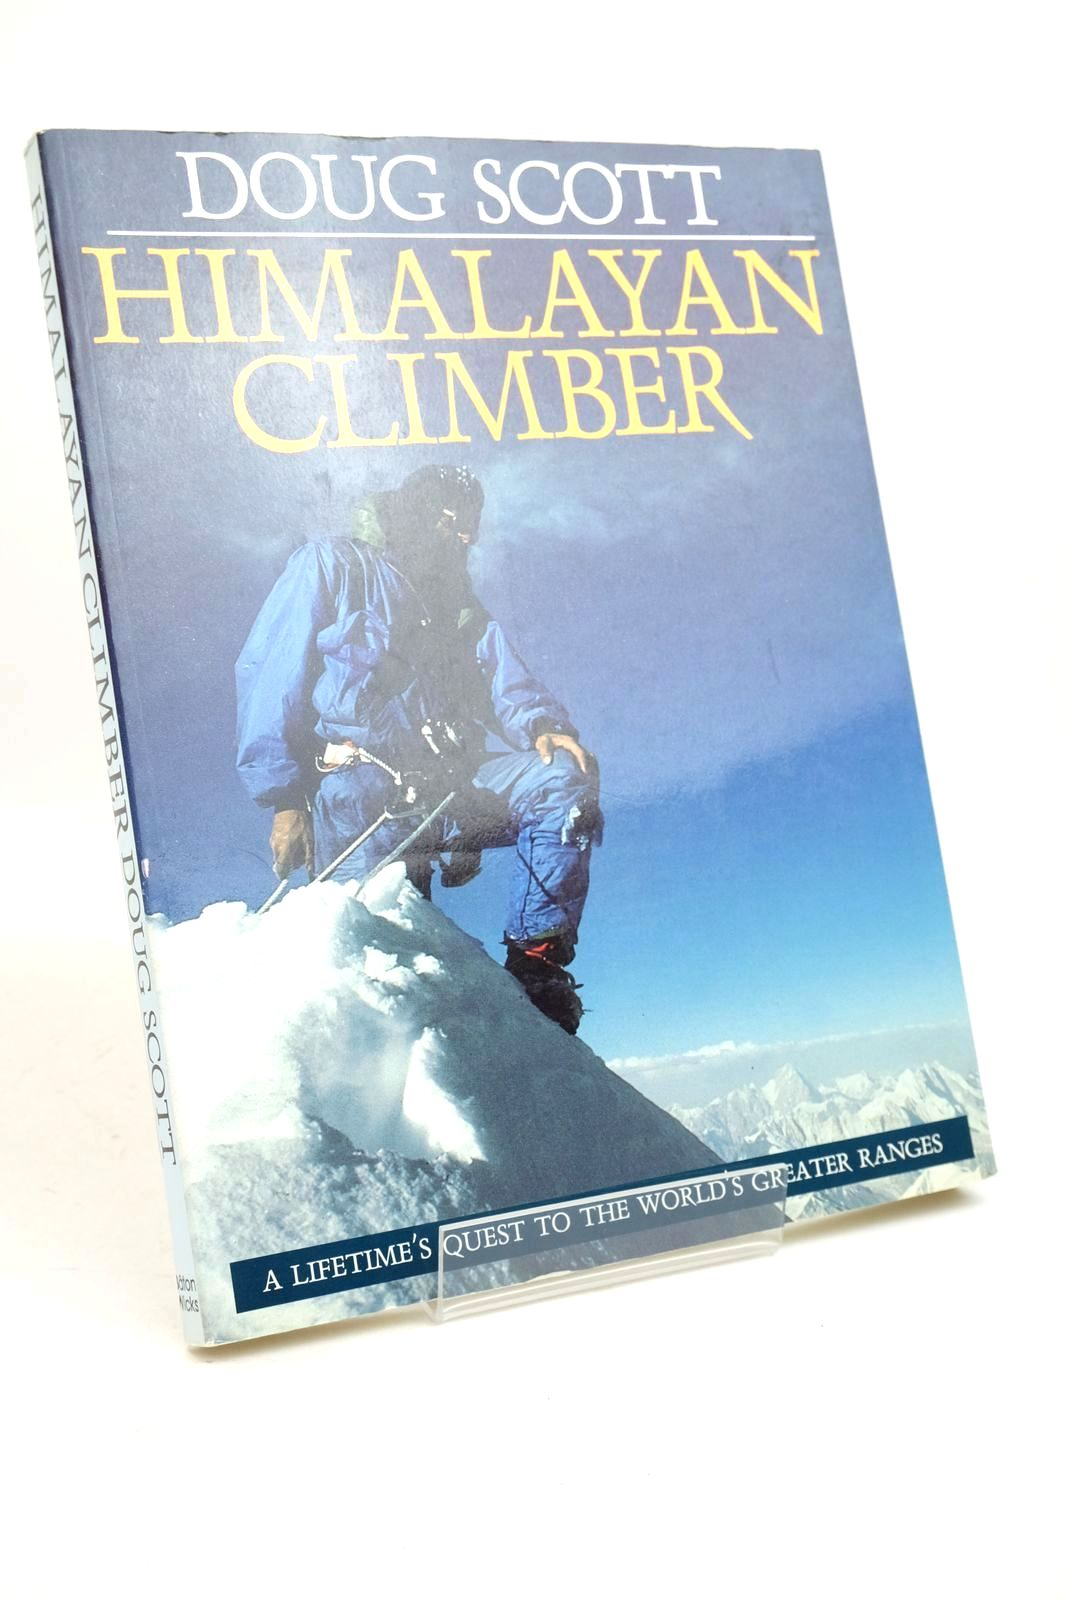 Photo of HIMALAYAN CLIMBER written by Scott, Doug published by Baton Wicks (STOCK CODE: 1321210)  for sale by Stella & Rose's Books